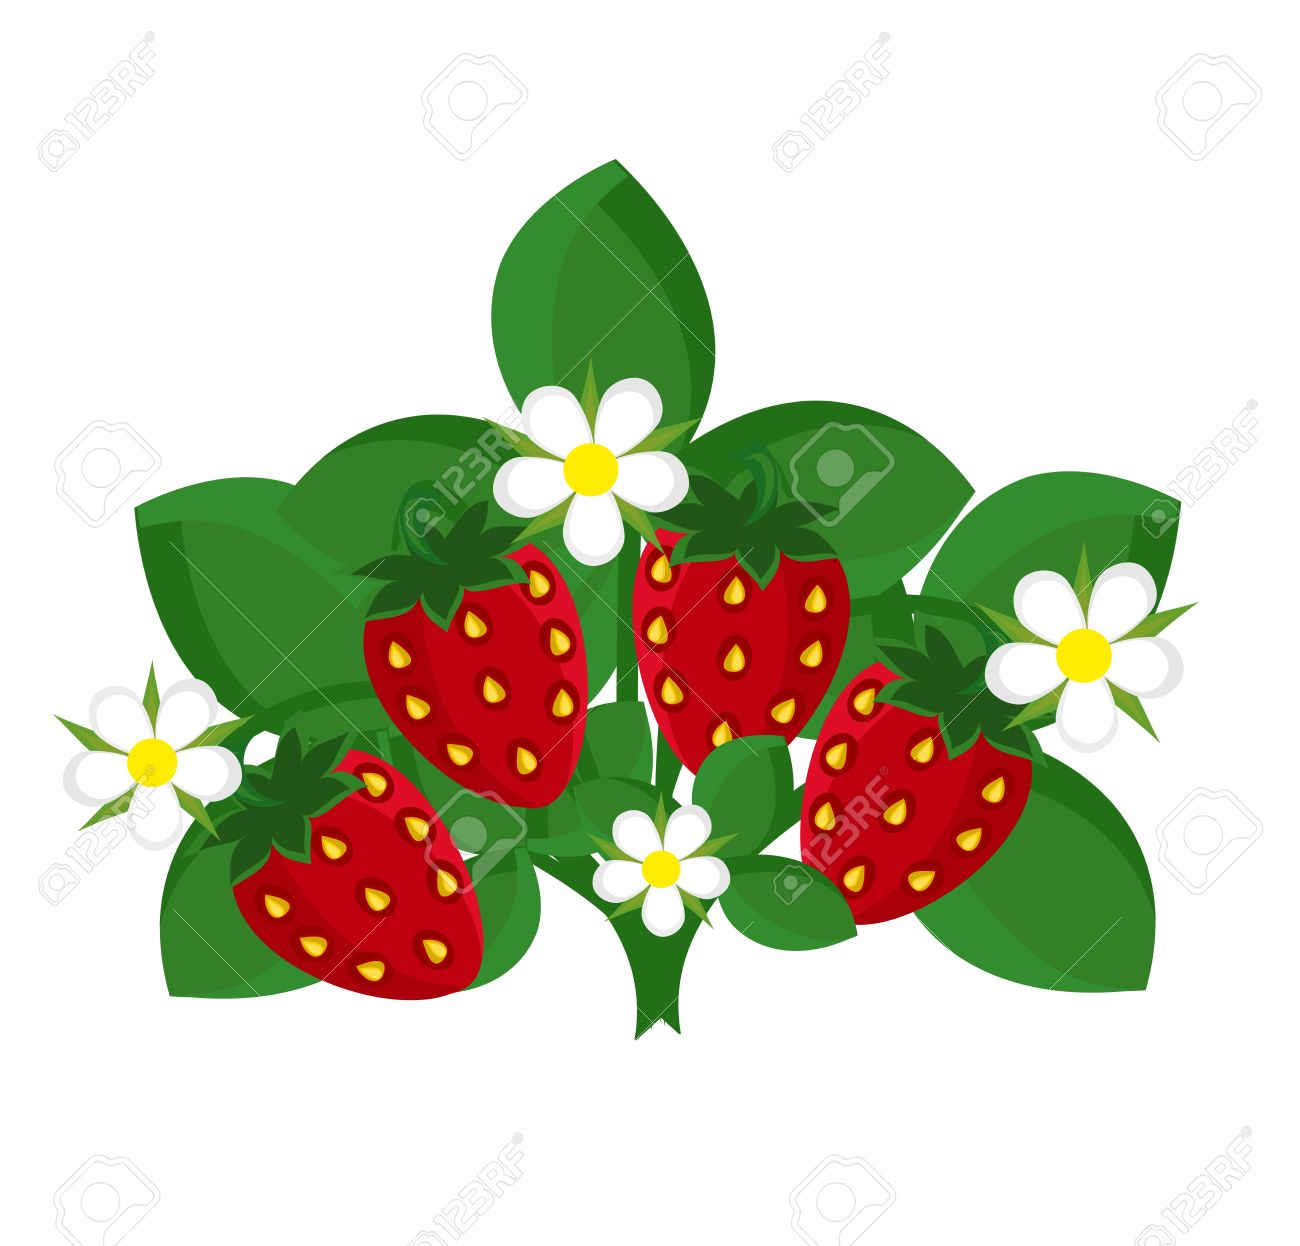 Strawberry Shrub With Fruits And Flowers. Royalty Free Cliparts.